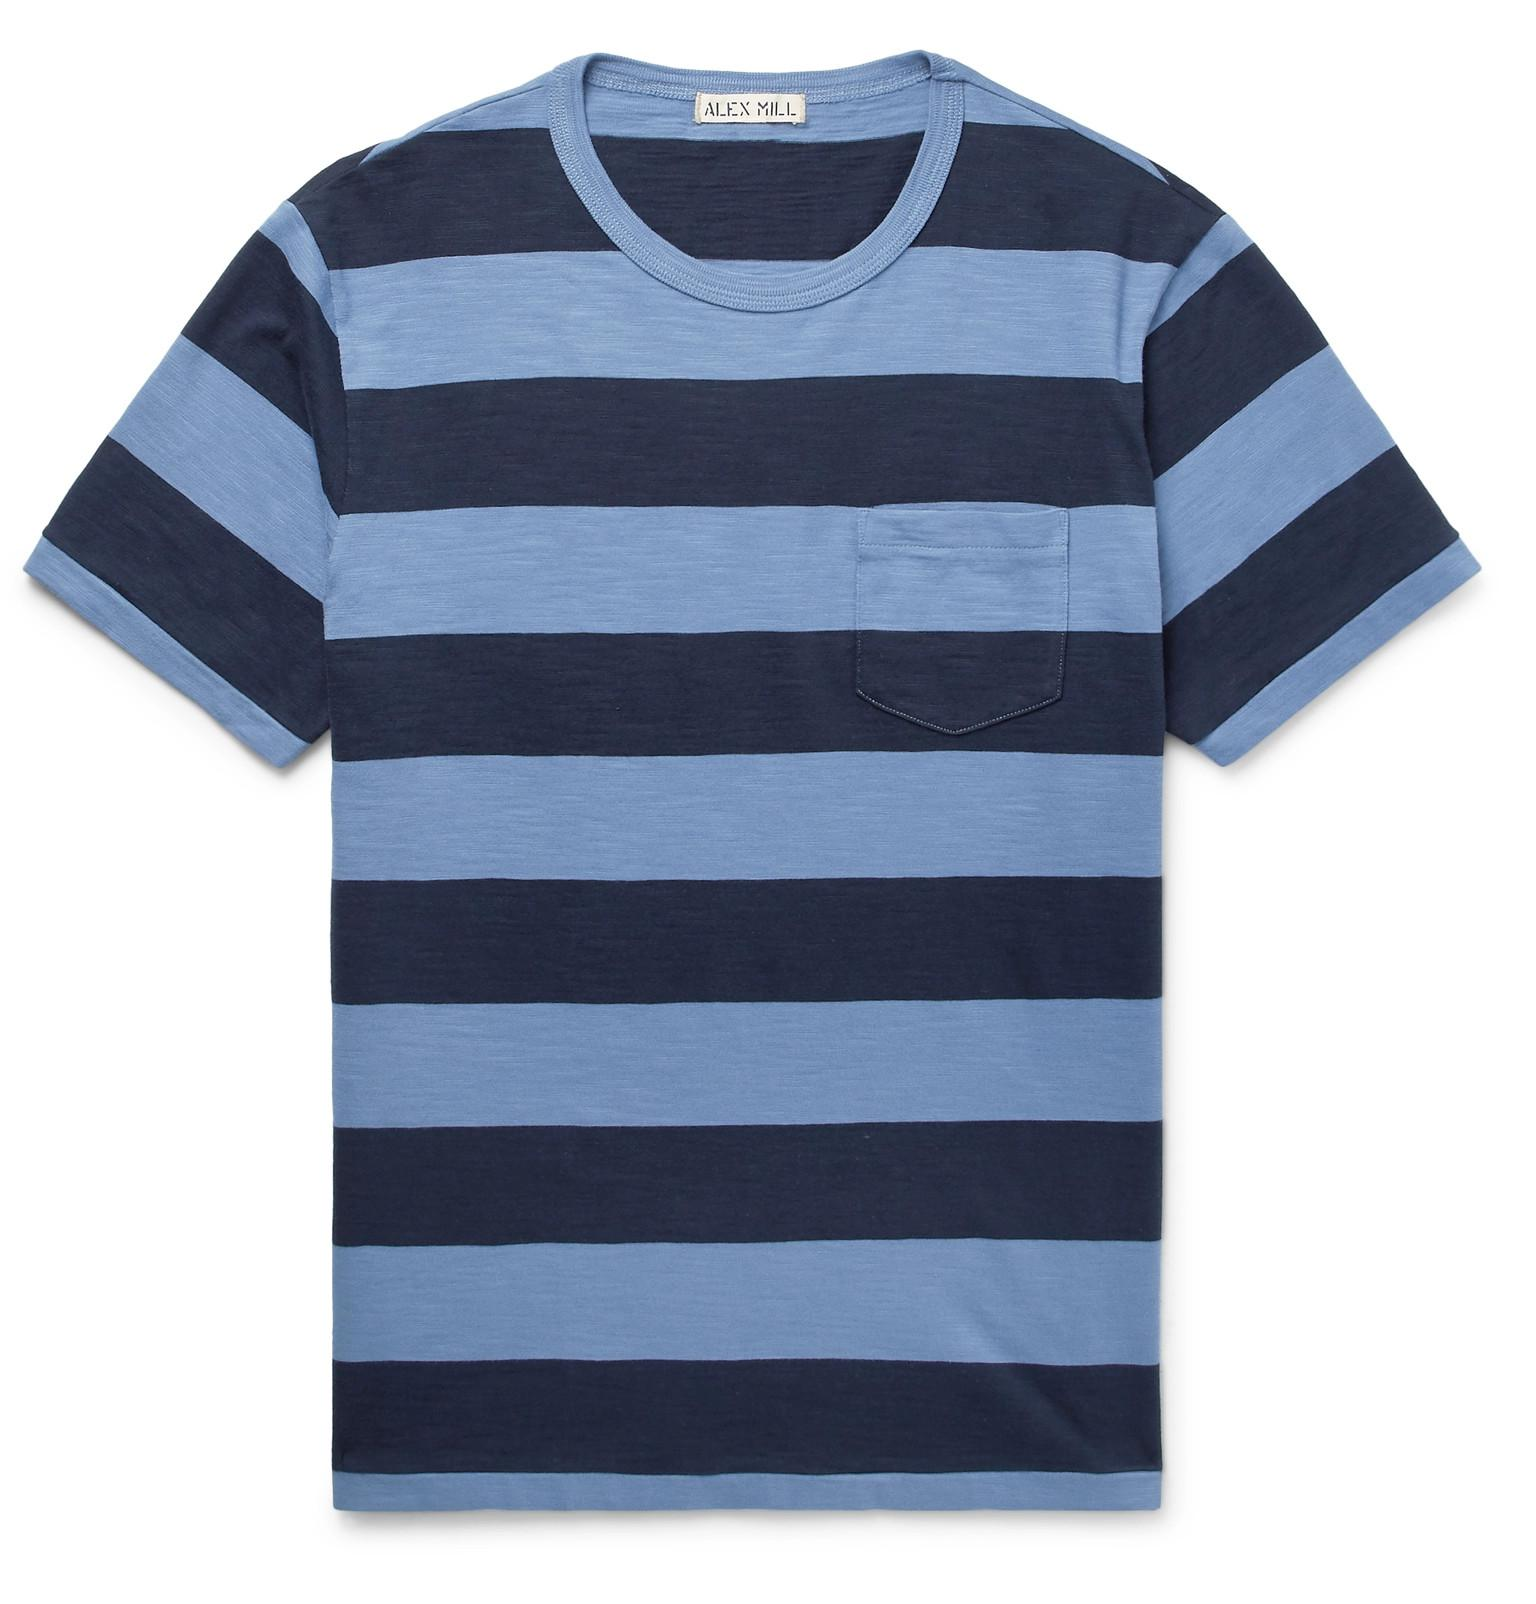 Outlet 2018 Mélange Striped Cotton-jersey T-shirt Alex Mill Really For Sale Big Discount Cheap Price Best Place For Sale YH8jbA7r